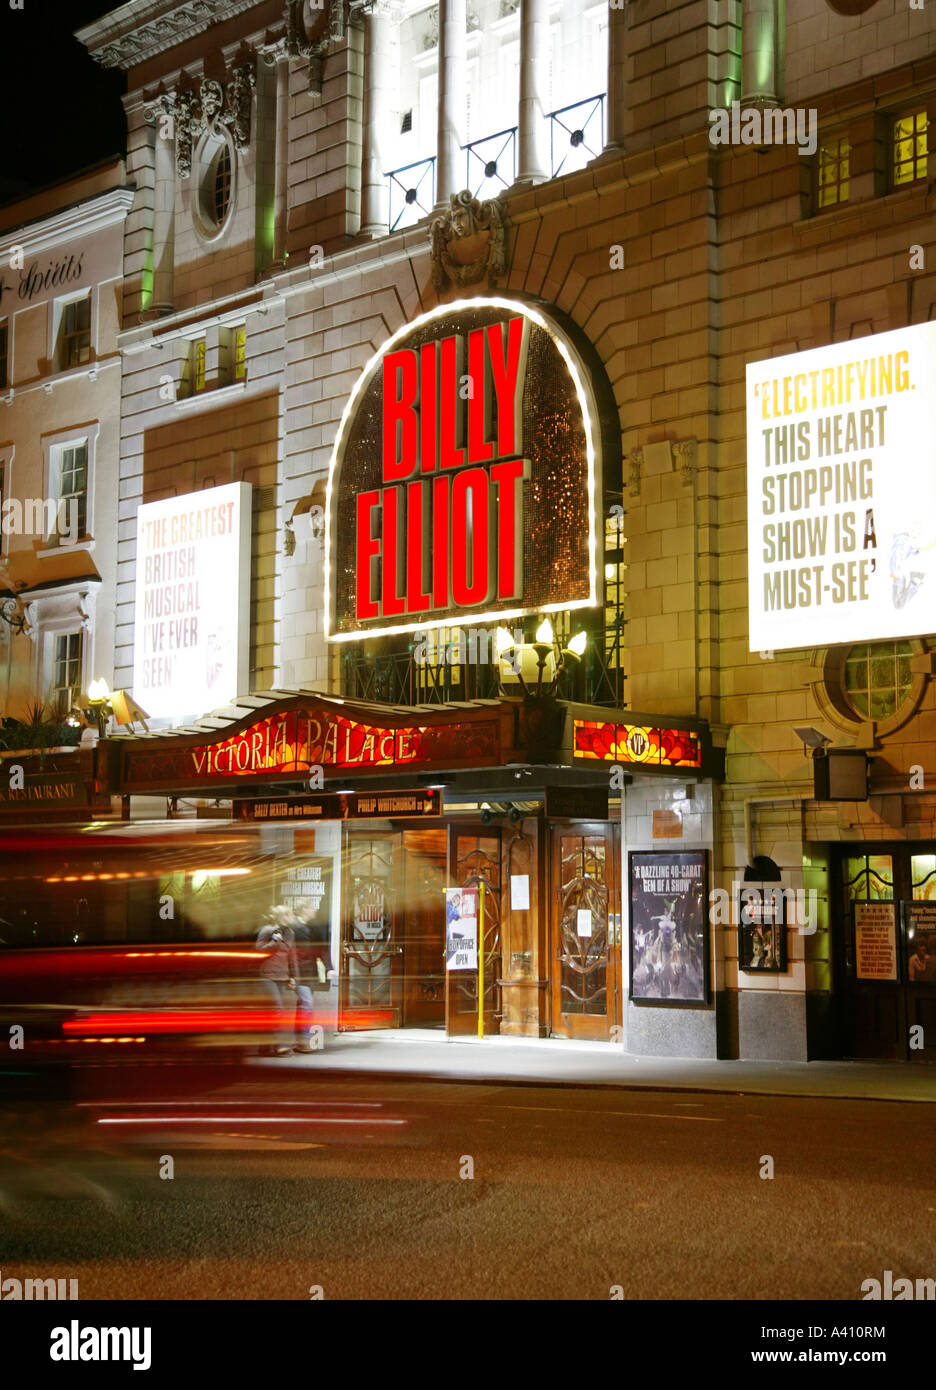 The Victoria Palace Theatre London showing Billy Elliot - Stock Image